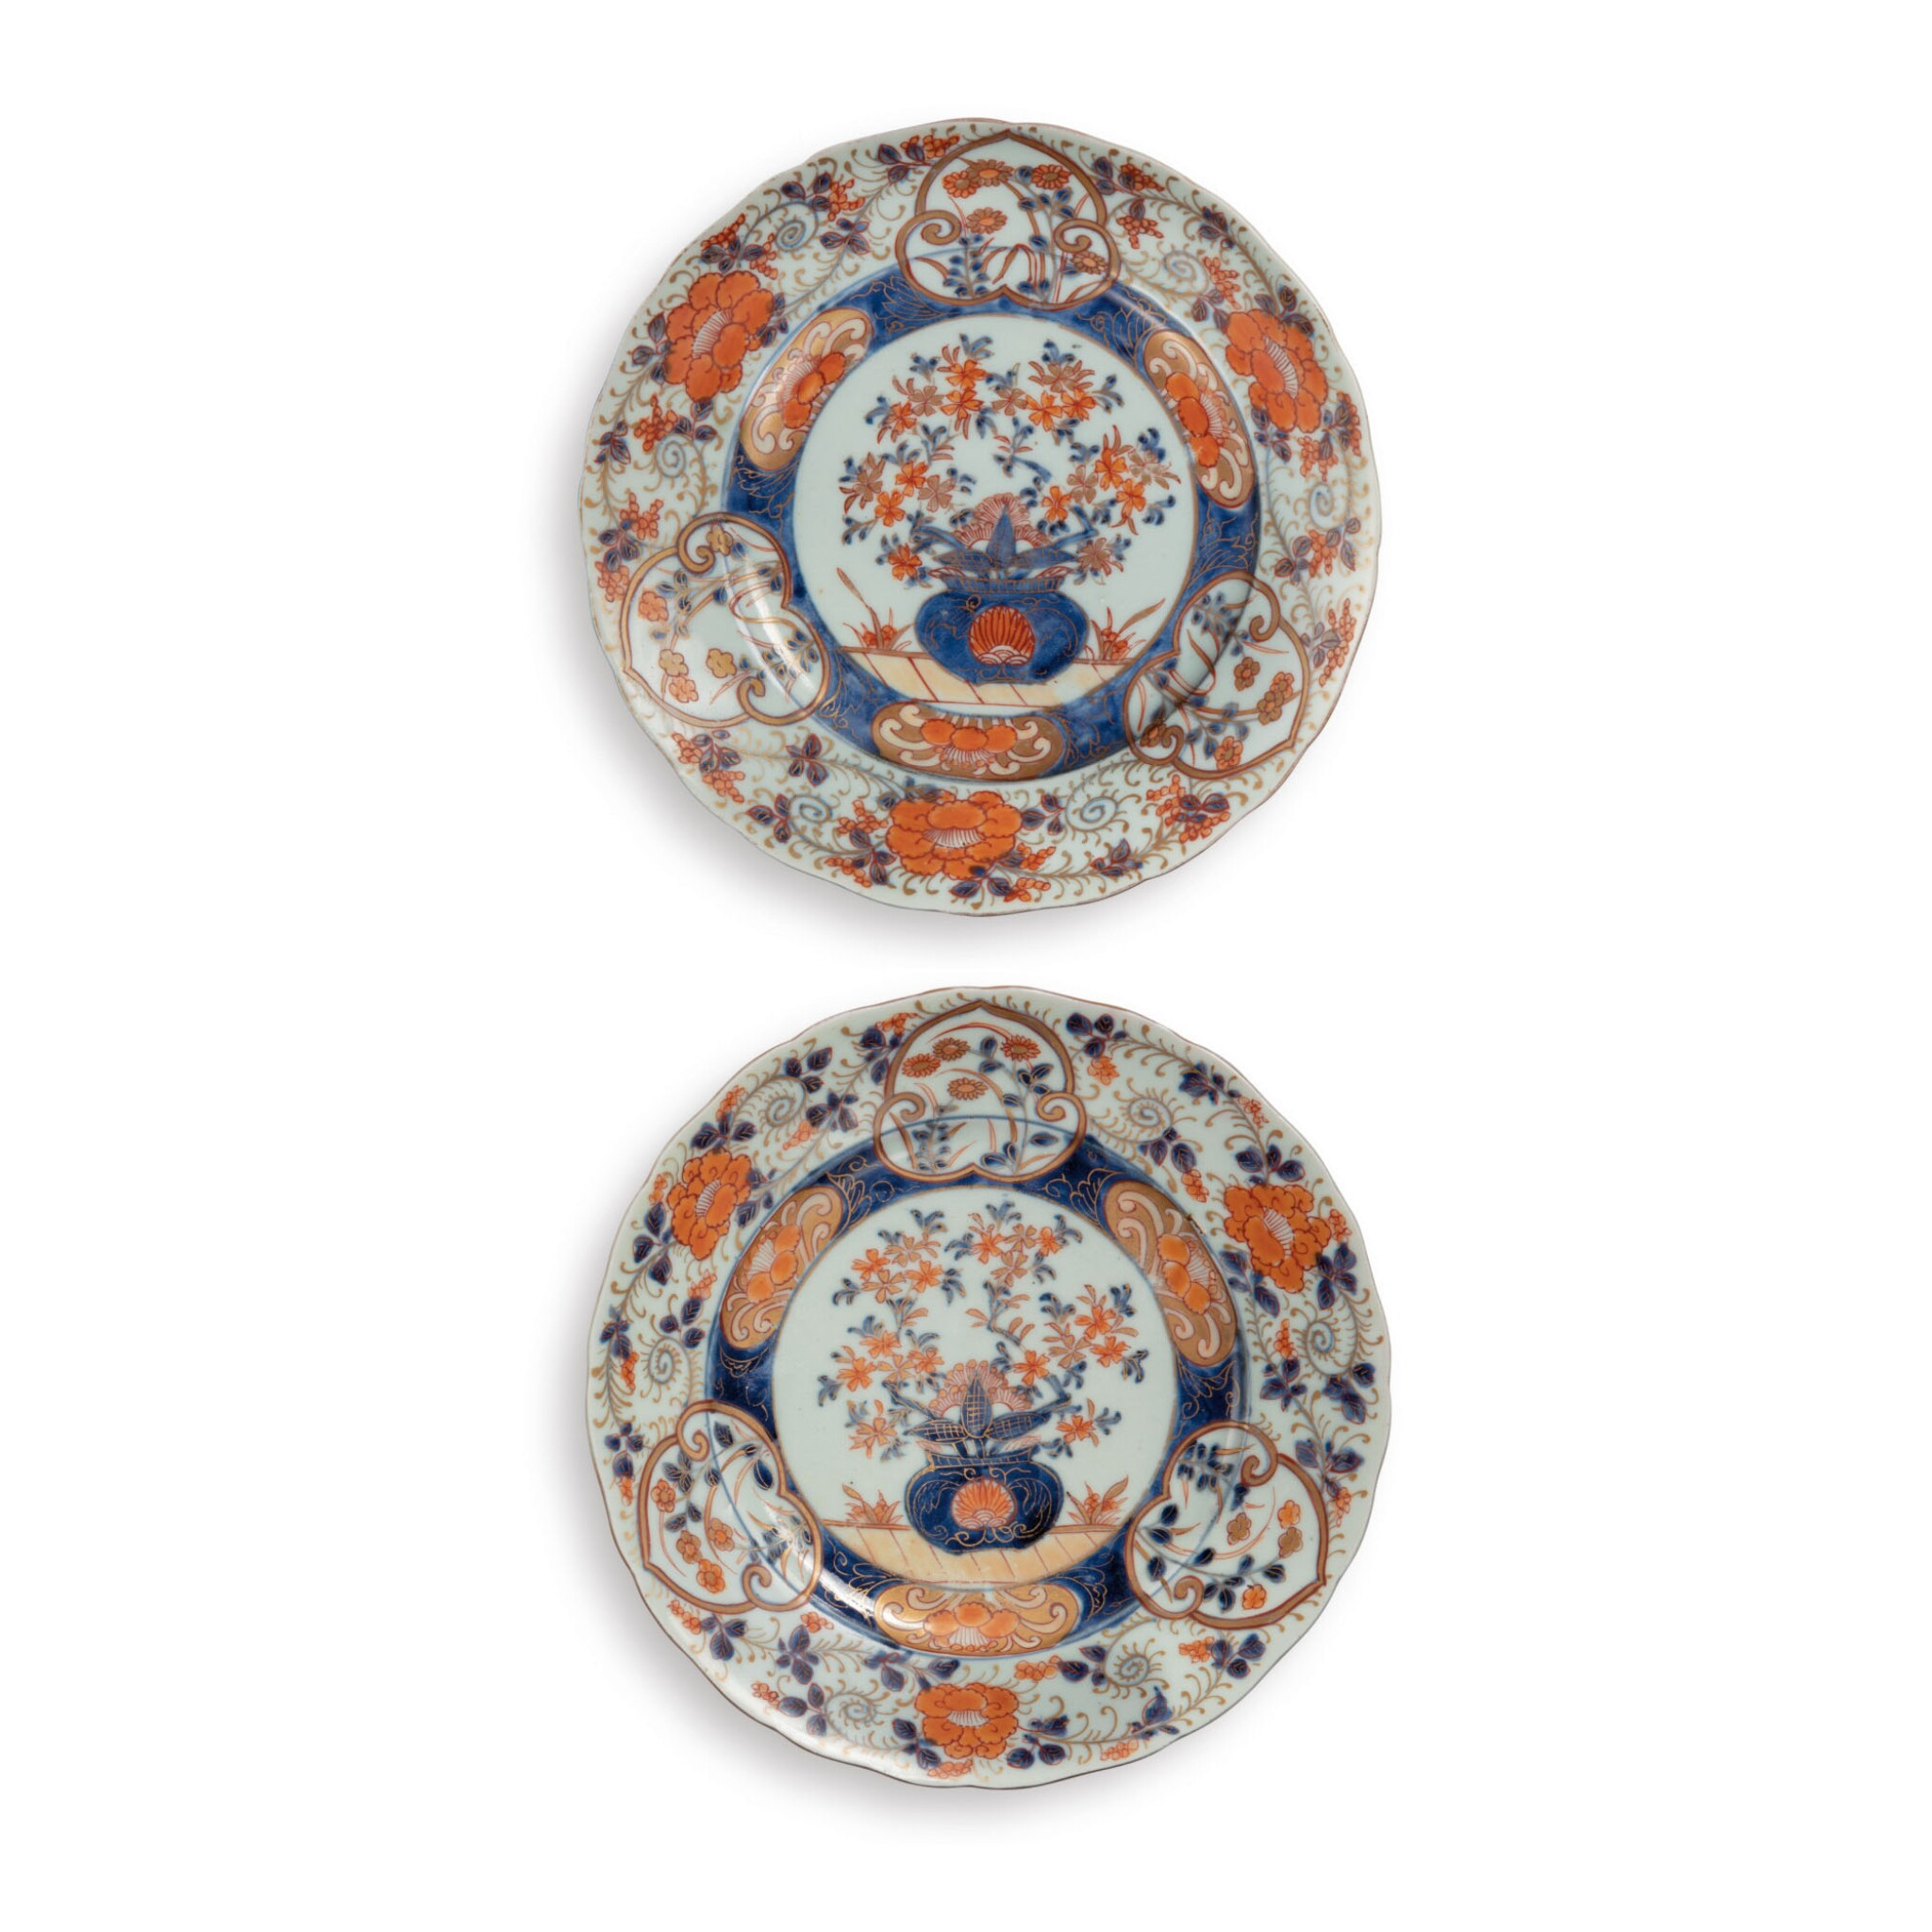 View full screen - View 1 of Lot 395. A PAIR OF JAPANESE IMARI 'FLORAL' DISHES EDO PERIOD, 17TH CENTURY | 伊万里 色絵皿 一対、江戸時代、17世紀 .